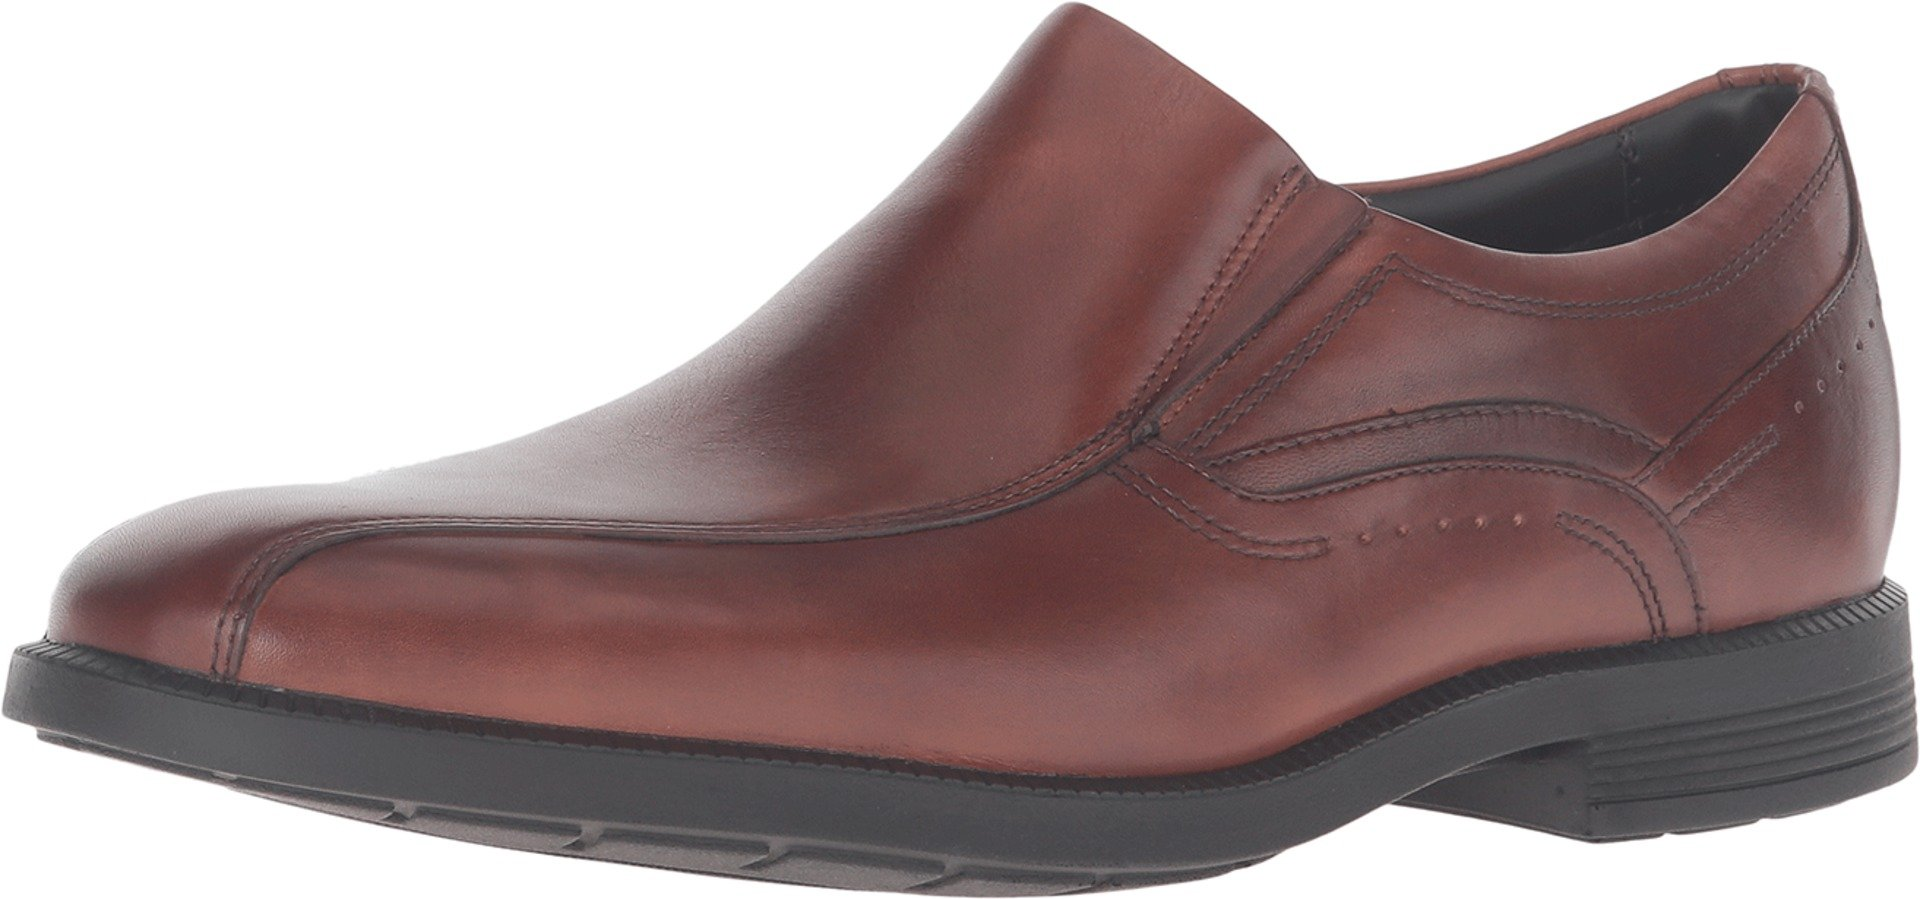 Rockport Men's Dressports Business Bike Toe Slip On,New Brown Leather,US 15 M by Rockport